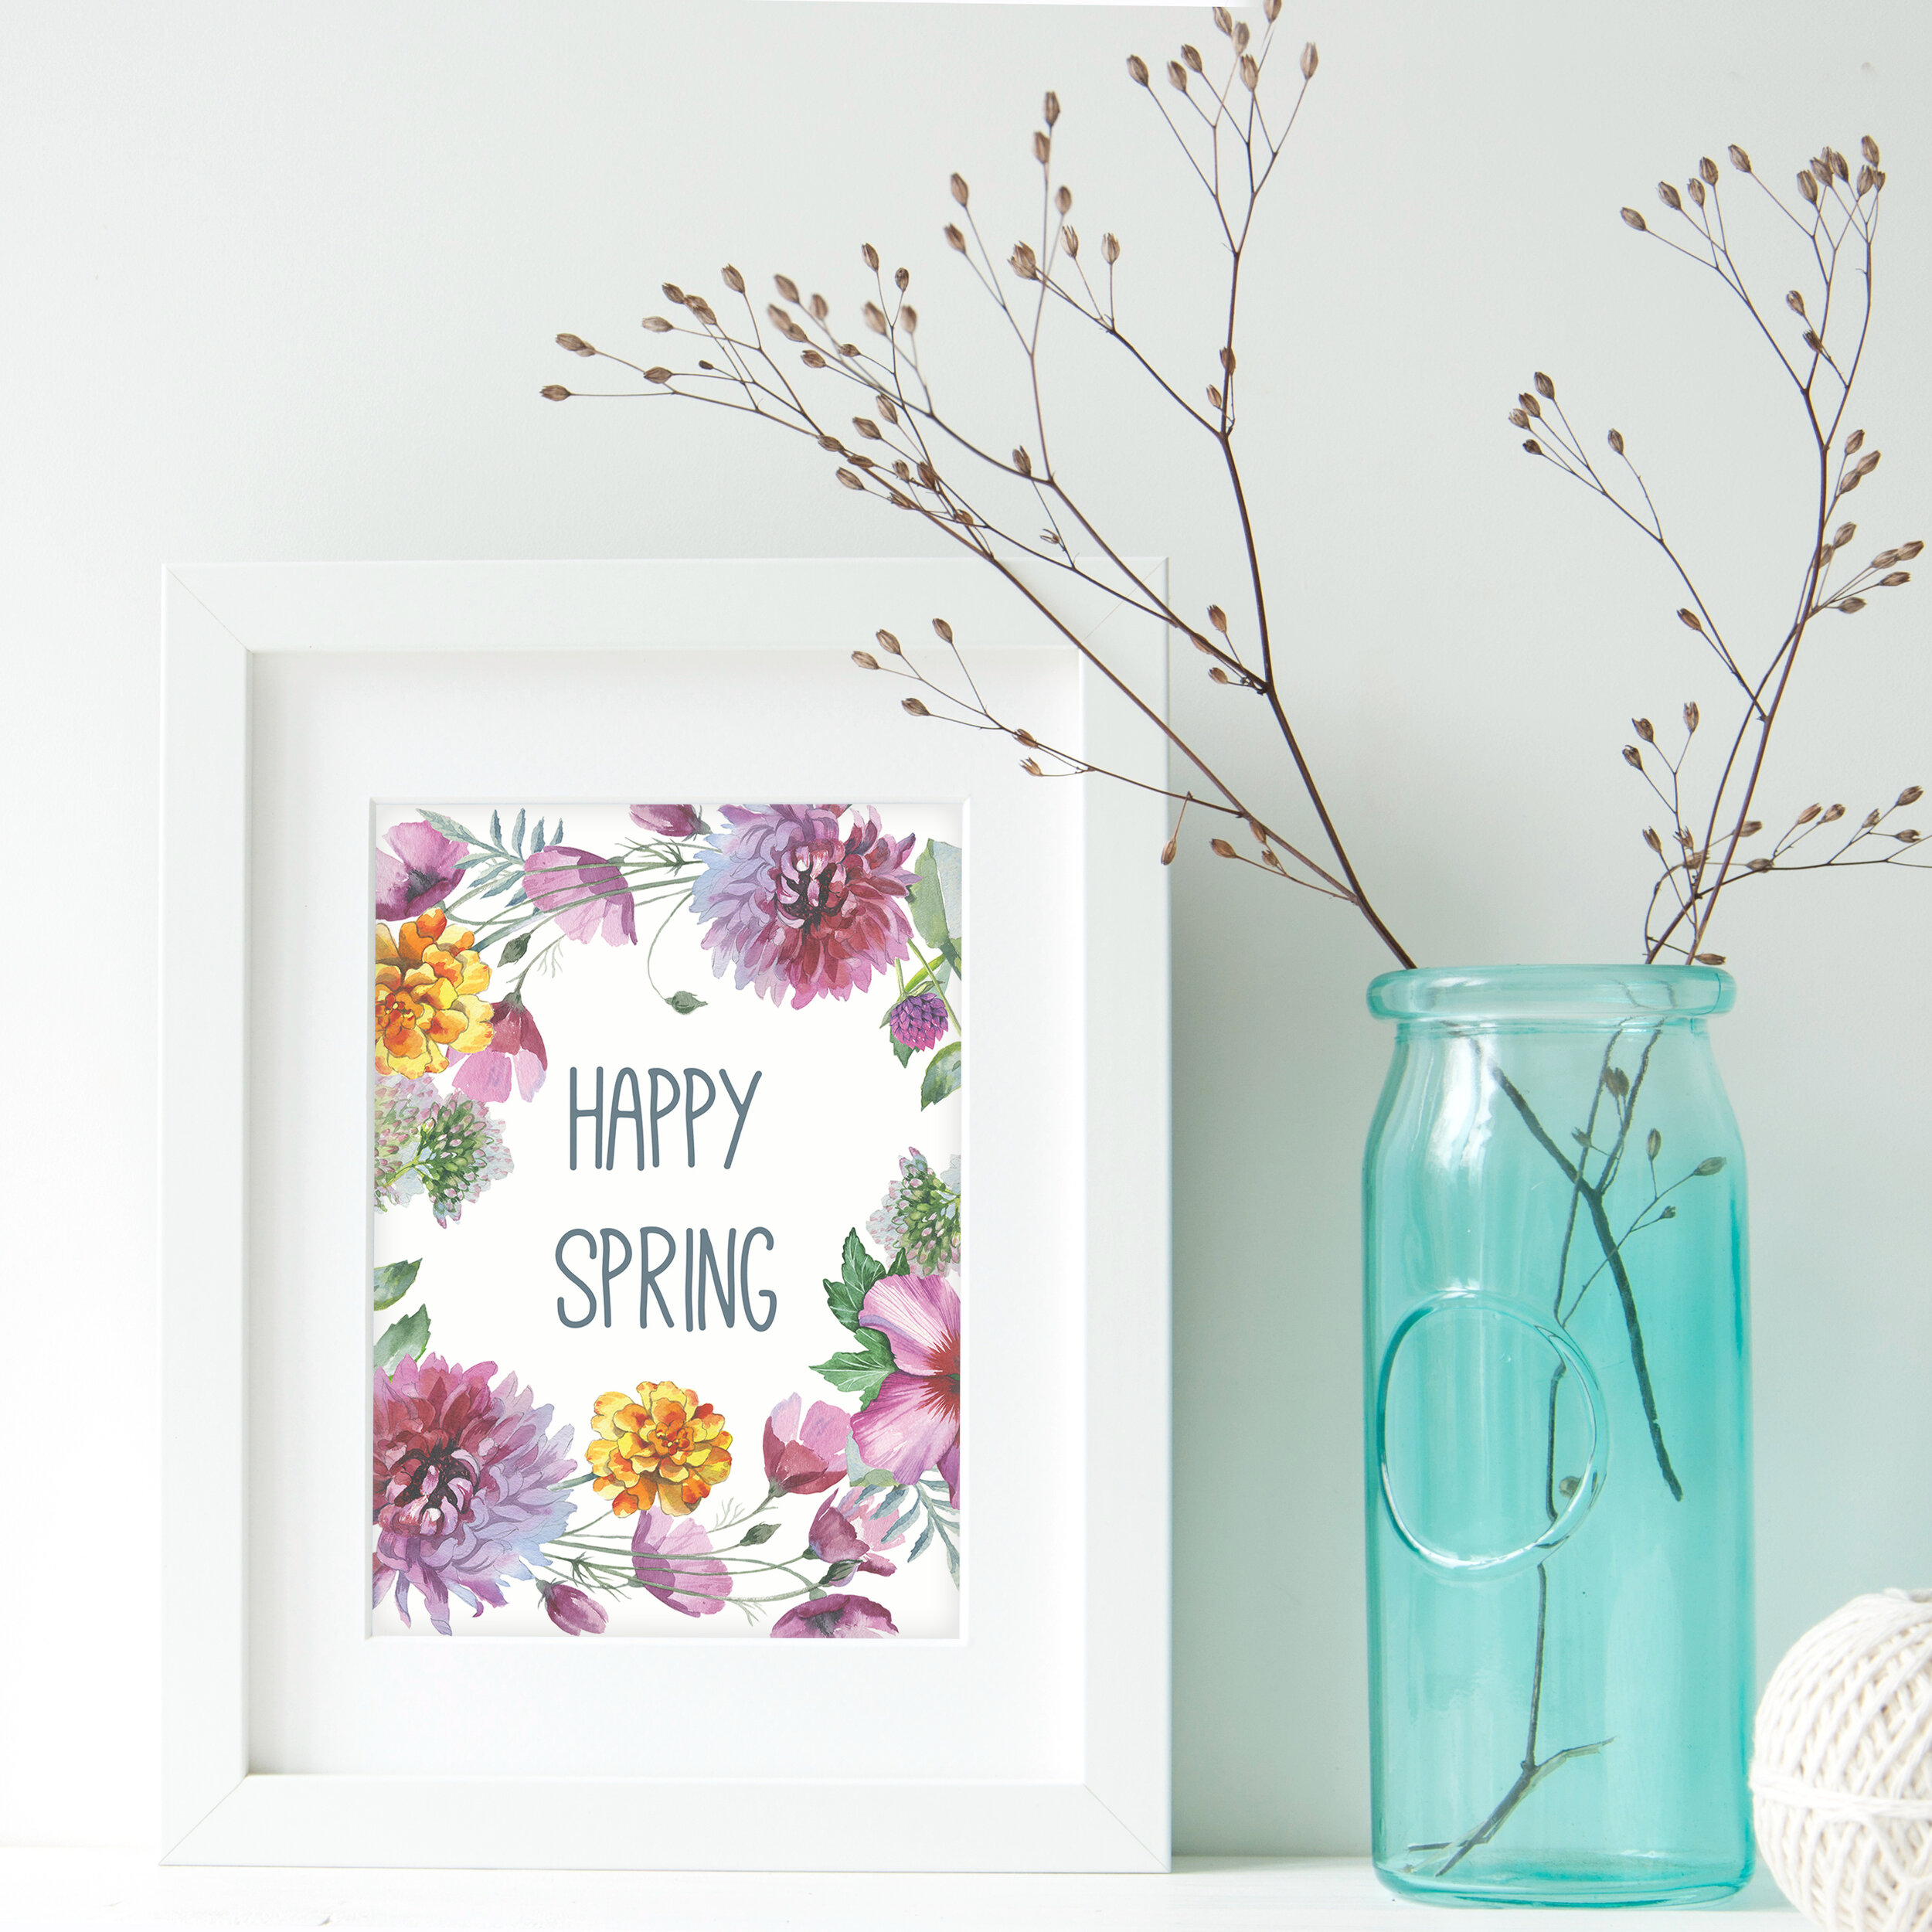 Download this Spring art FREE for a limited time!